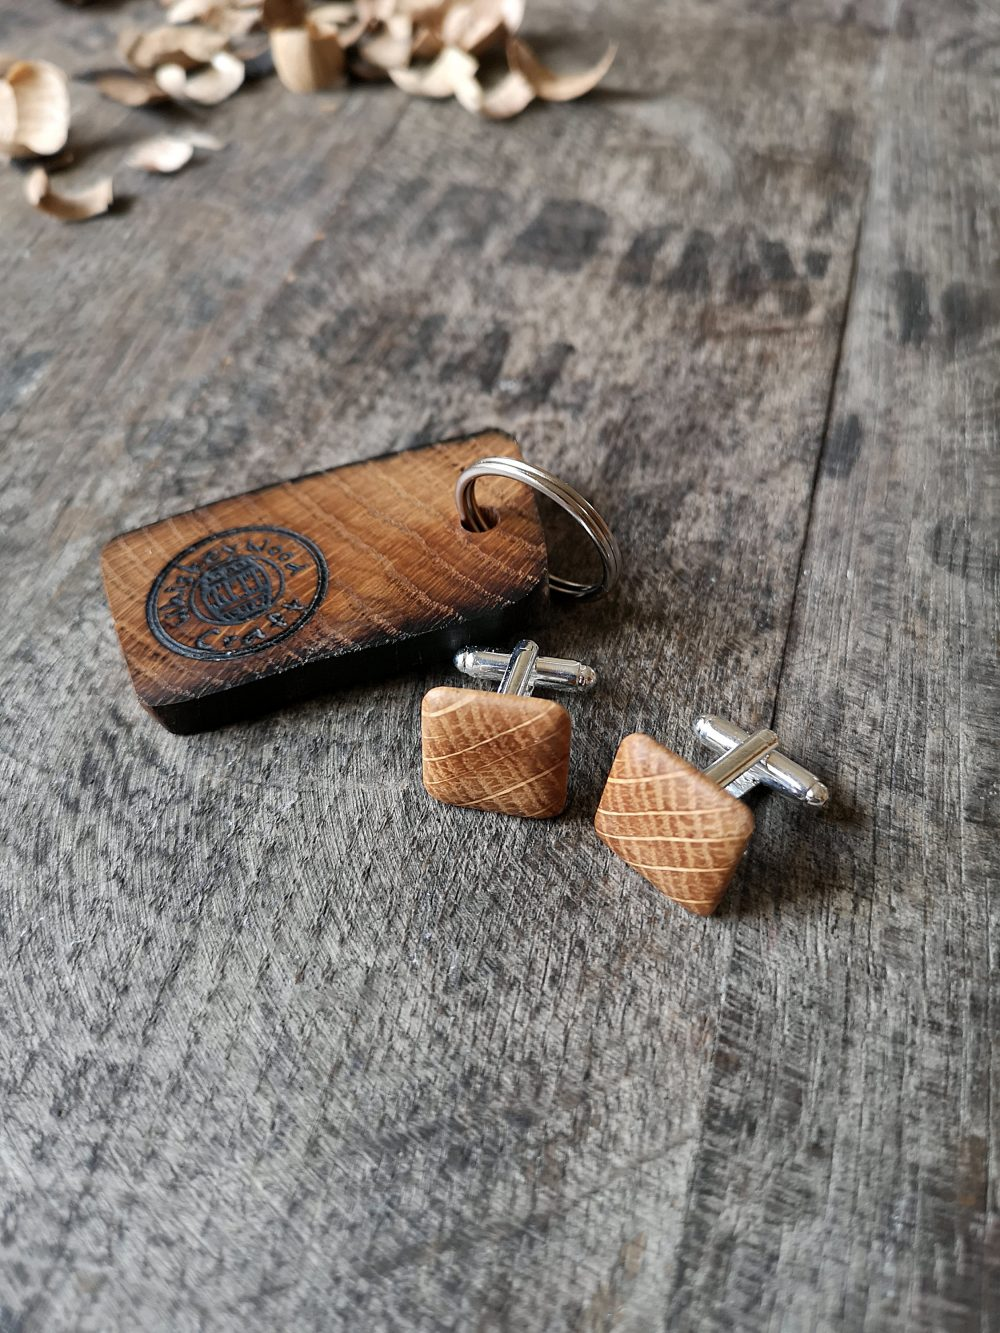 Irish Whiskey Barrel Cufflinks With Keyring. Unique Gifts For Him, Husband Gift, Anniversary Gift, Whiskey Lover, Gifts Men, Groomsmen Gift